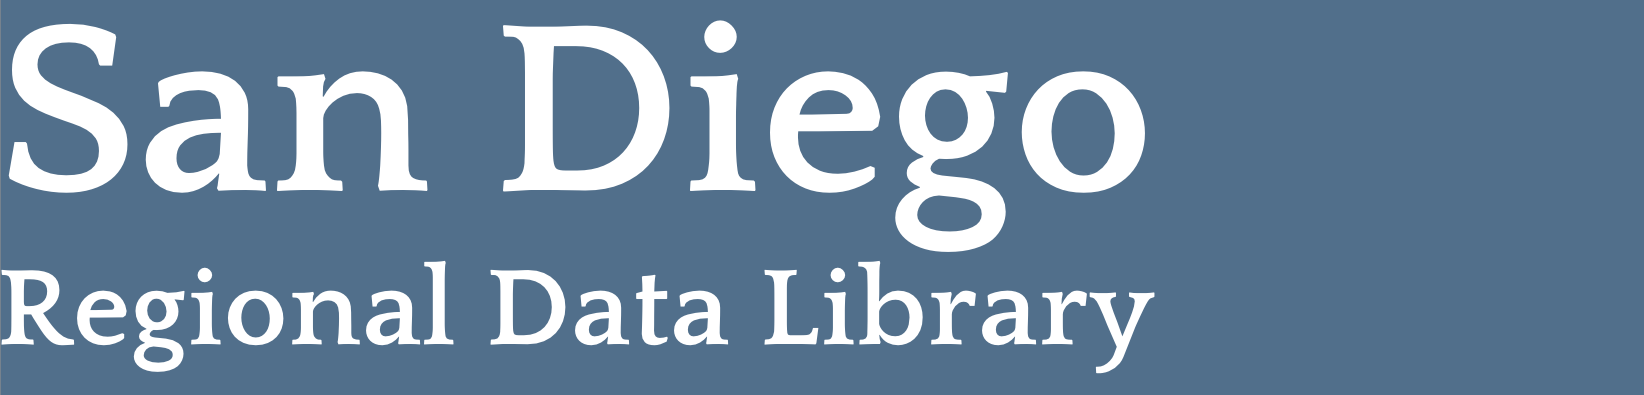 San Diego Regional Data Library